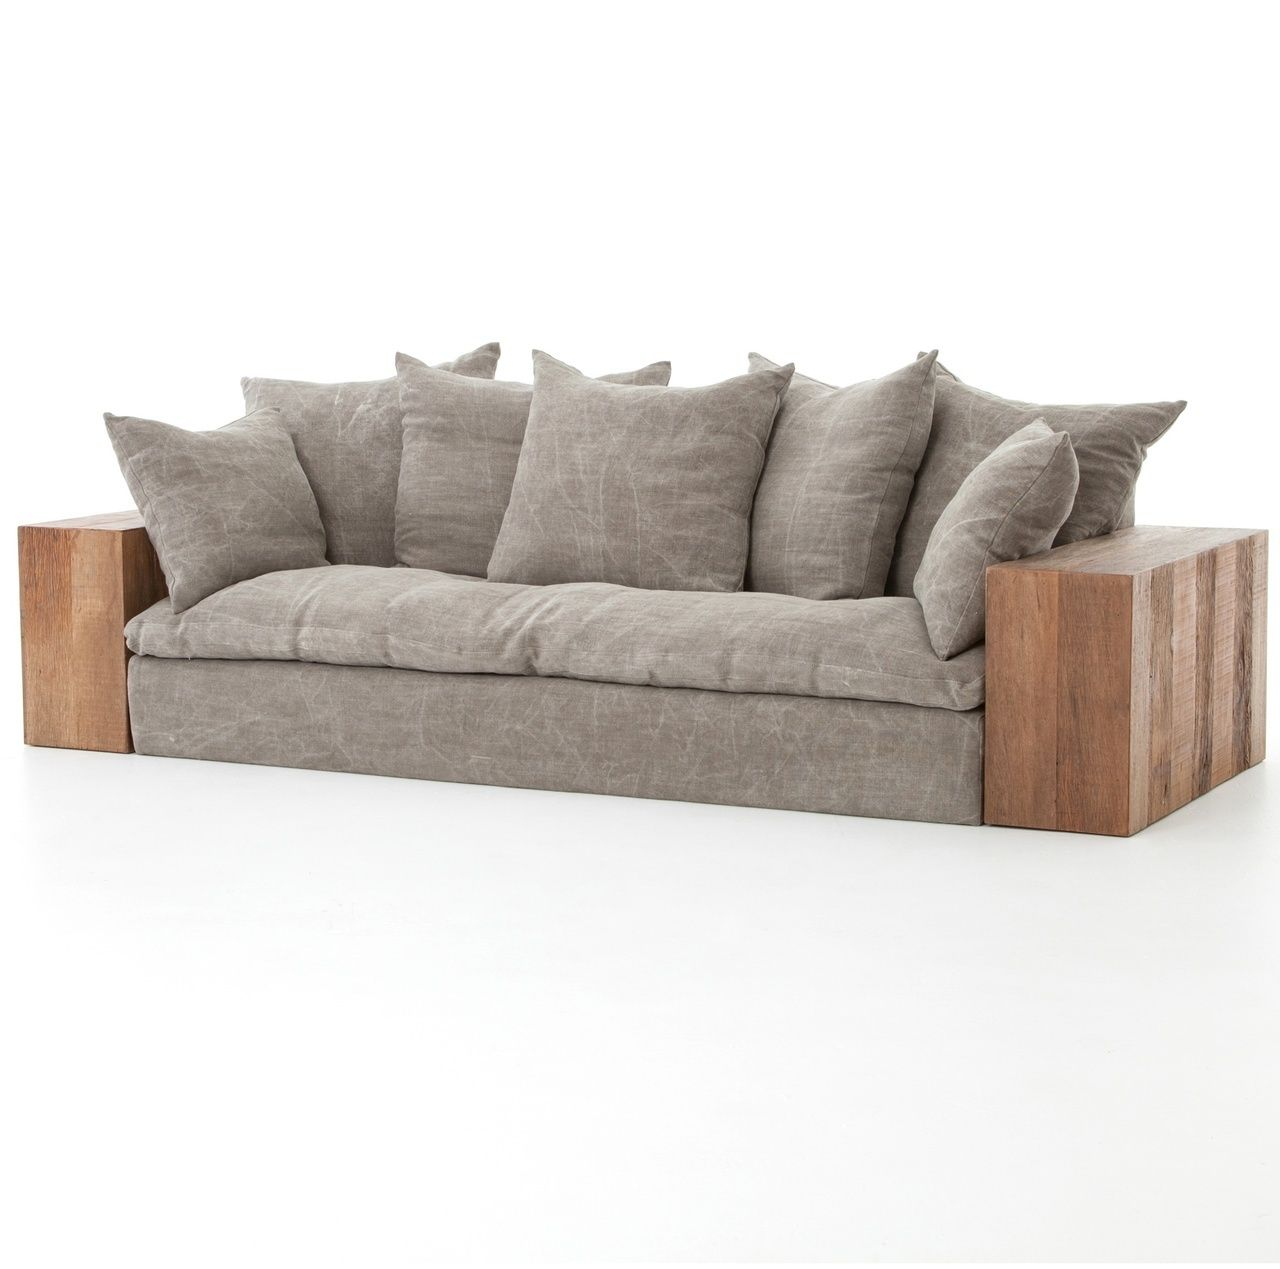 Dorset Industrial Loft Taupe Jute Sofa With Wood Arms Rustic